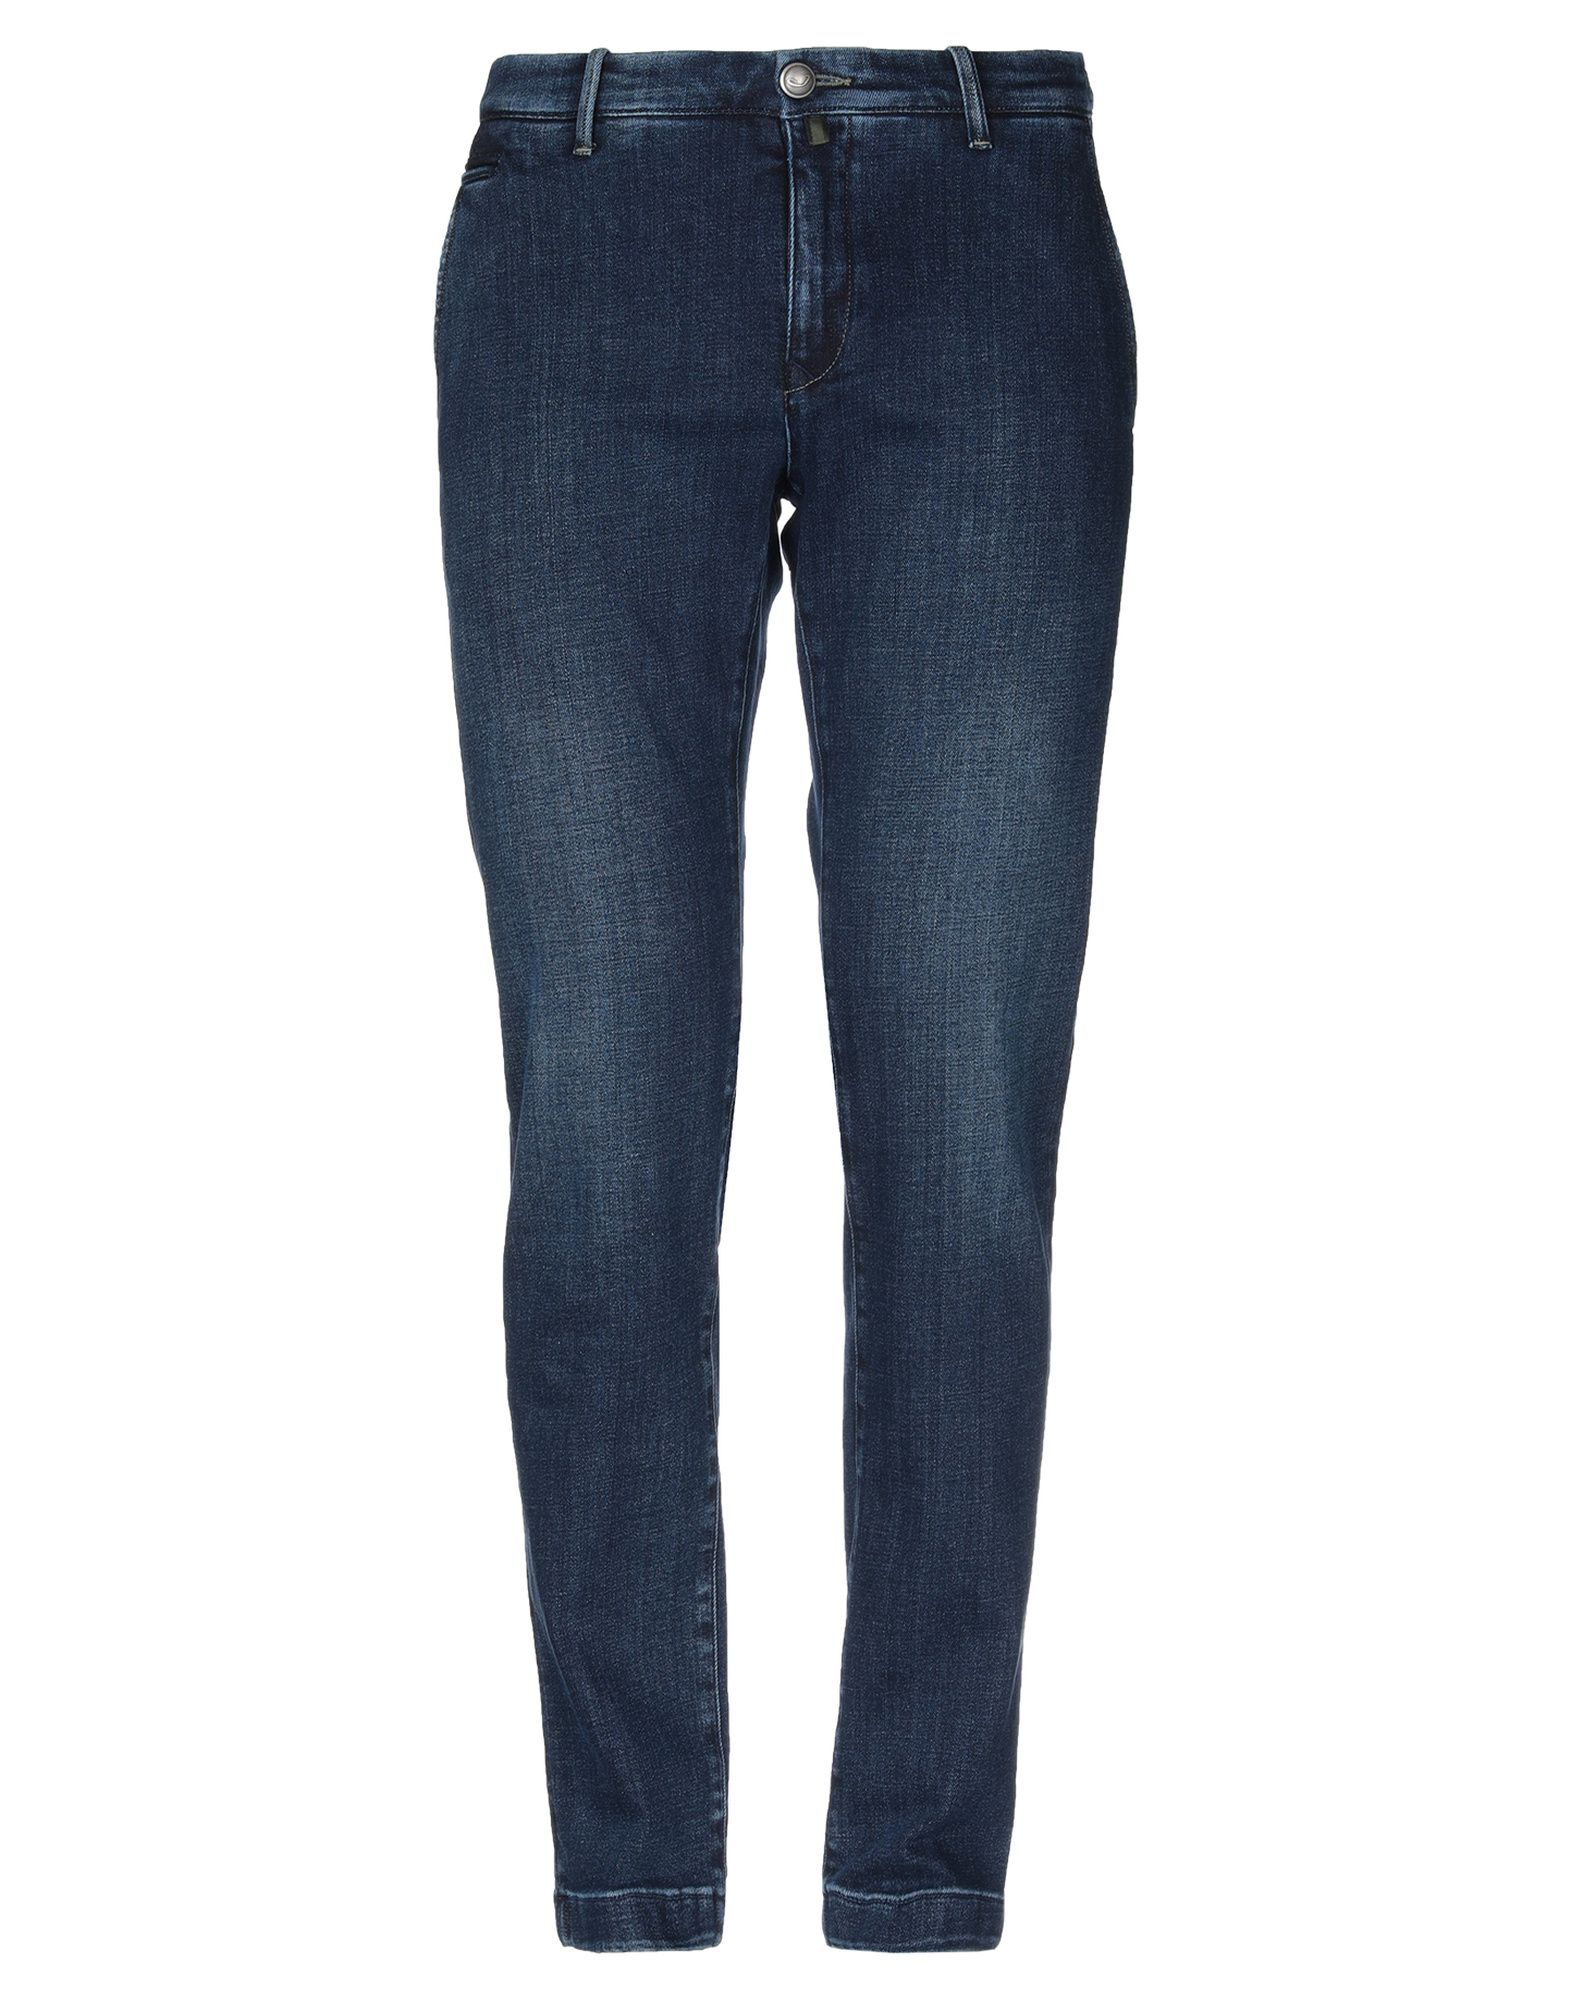 JACOB COHЁN Denim pants - Item 42744093